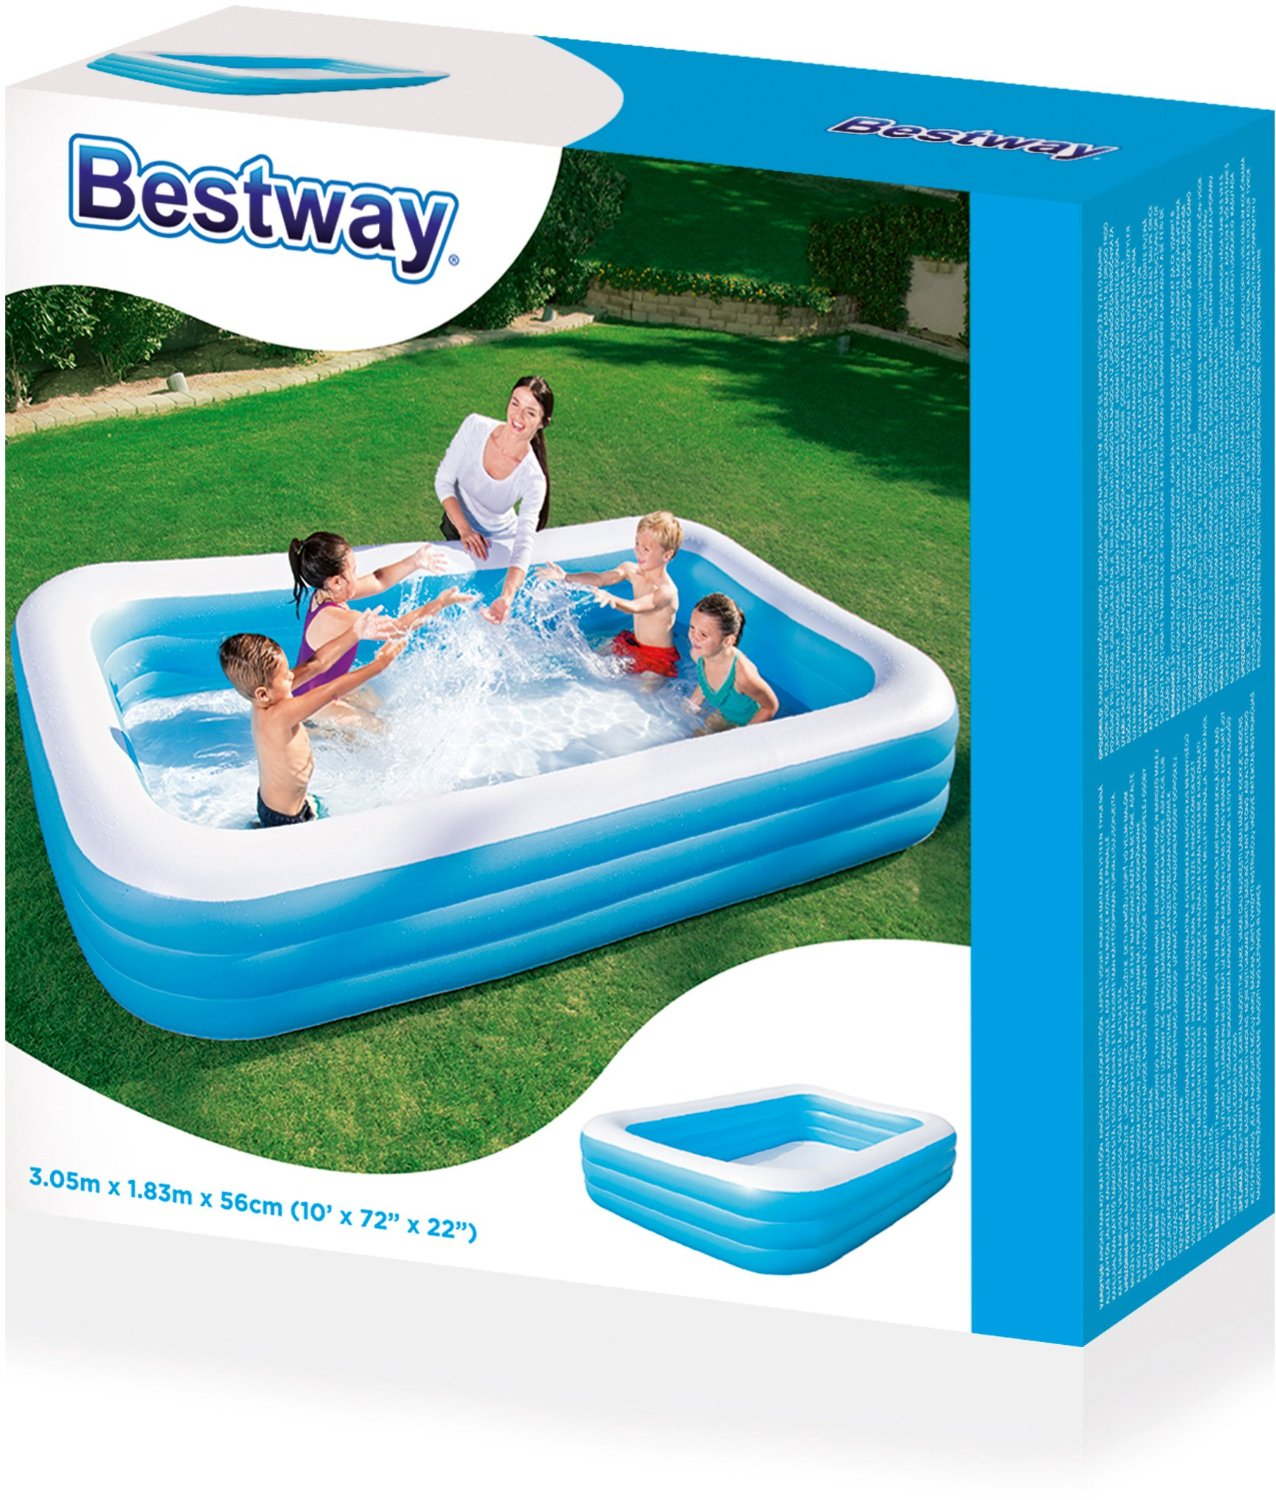 neu bestway schnell angebrachte pool abdeckung schutz mit seile ebay. Black Bedroom Furniture Sets. Home Design Ideas